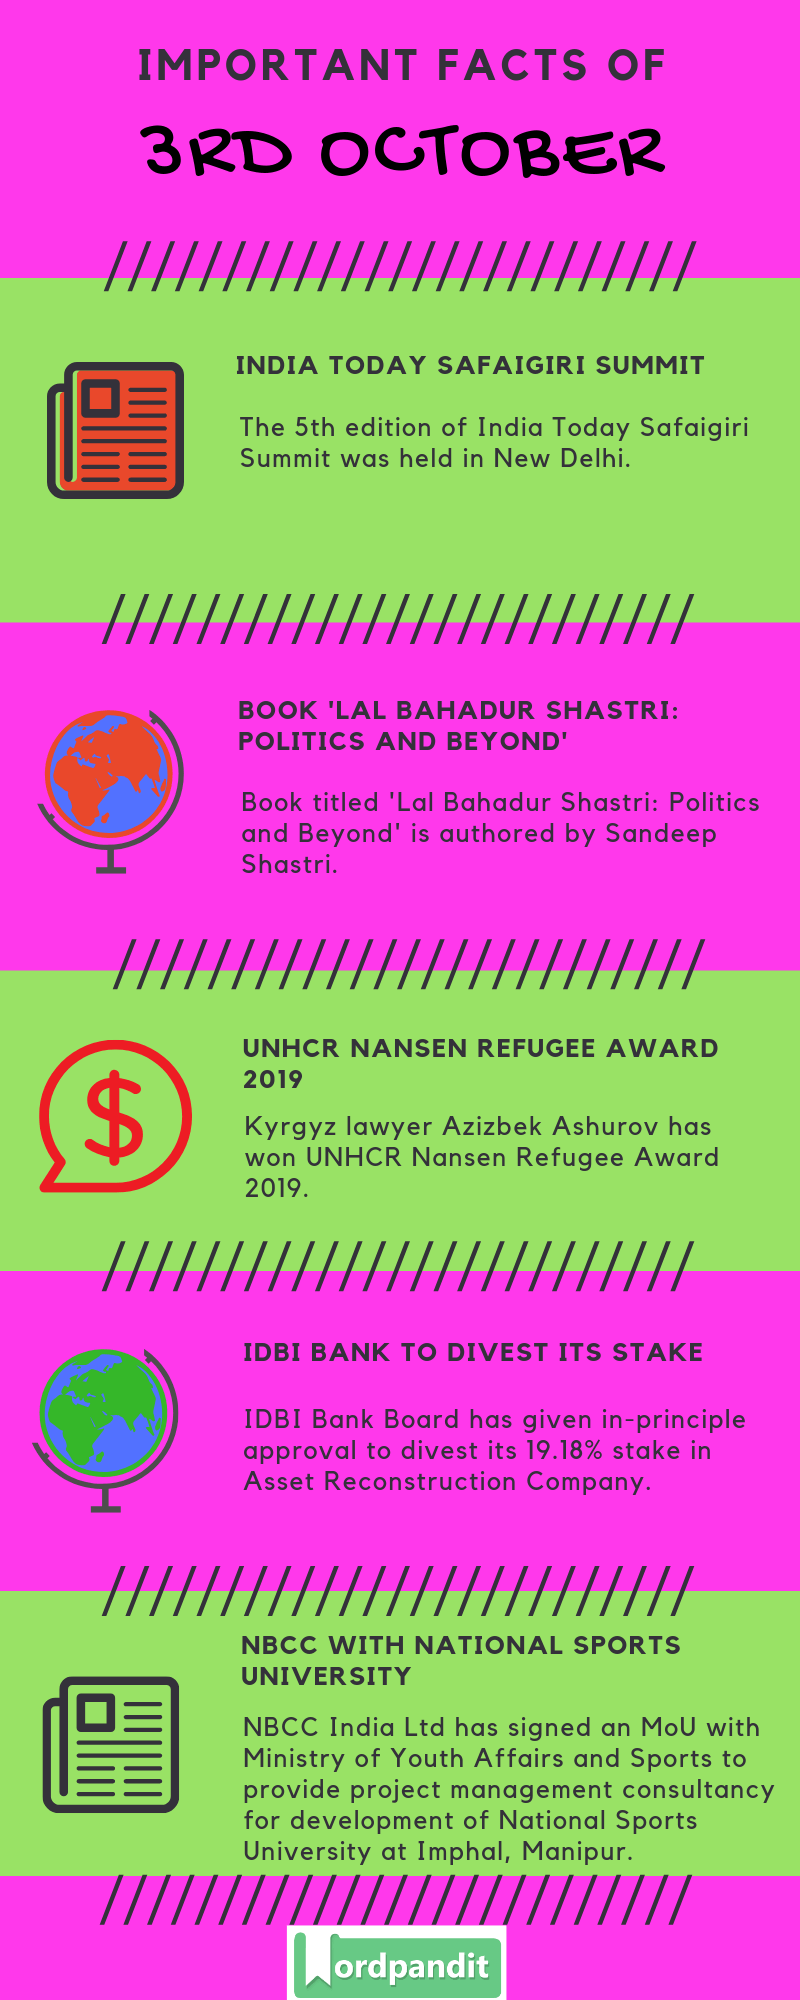 Daily Current Affairs 3 October 2019 Current Affairs Quiz 3 October 2019 Current Affairs Infographic